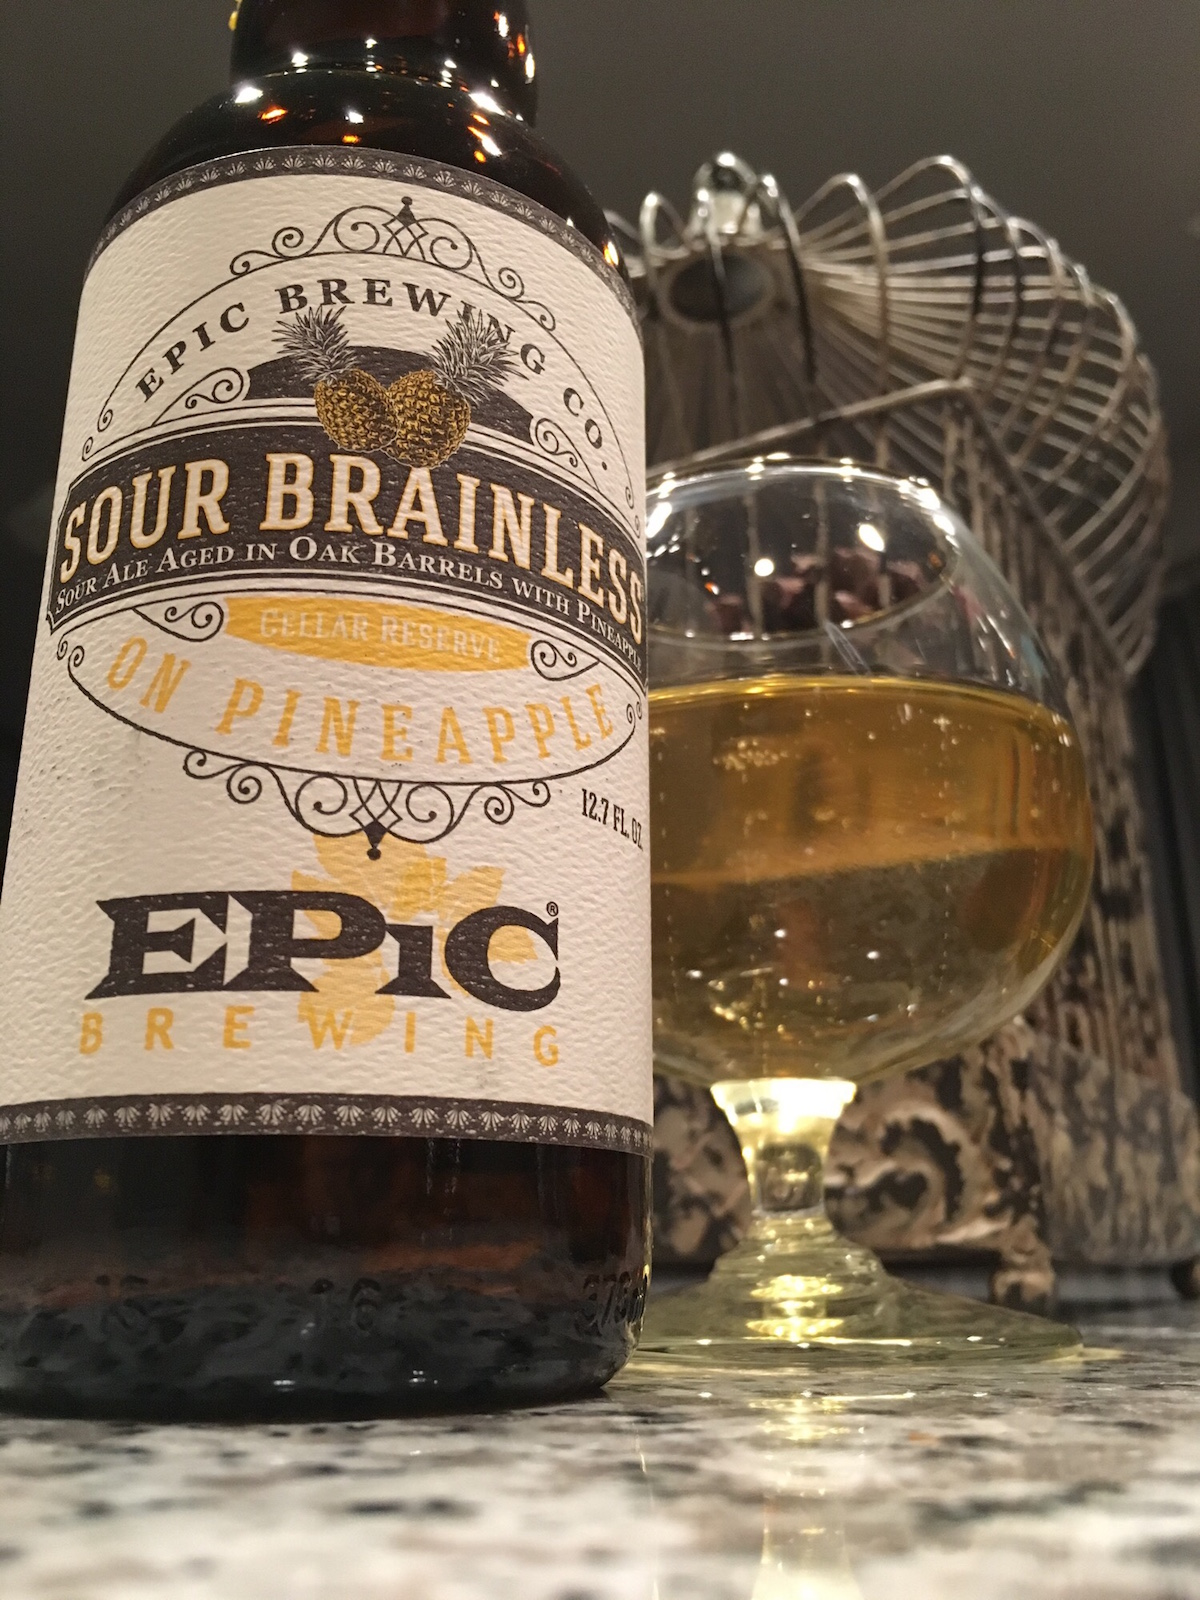 epic-brewing-company-sour-brainless-on-pineapple